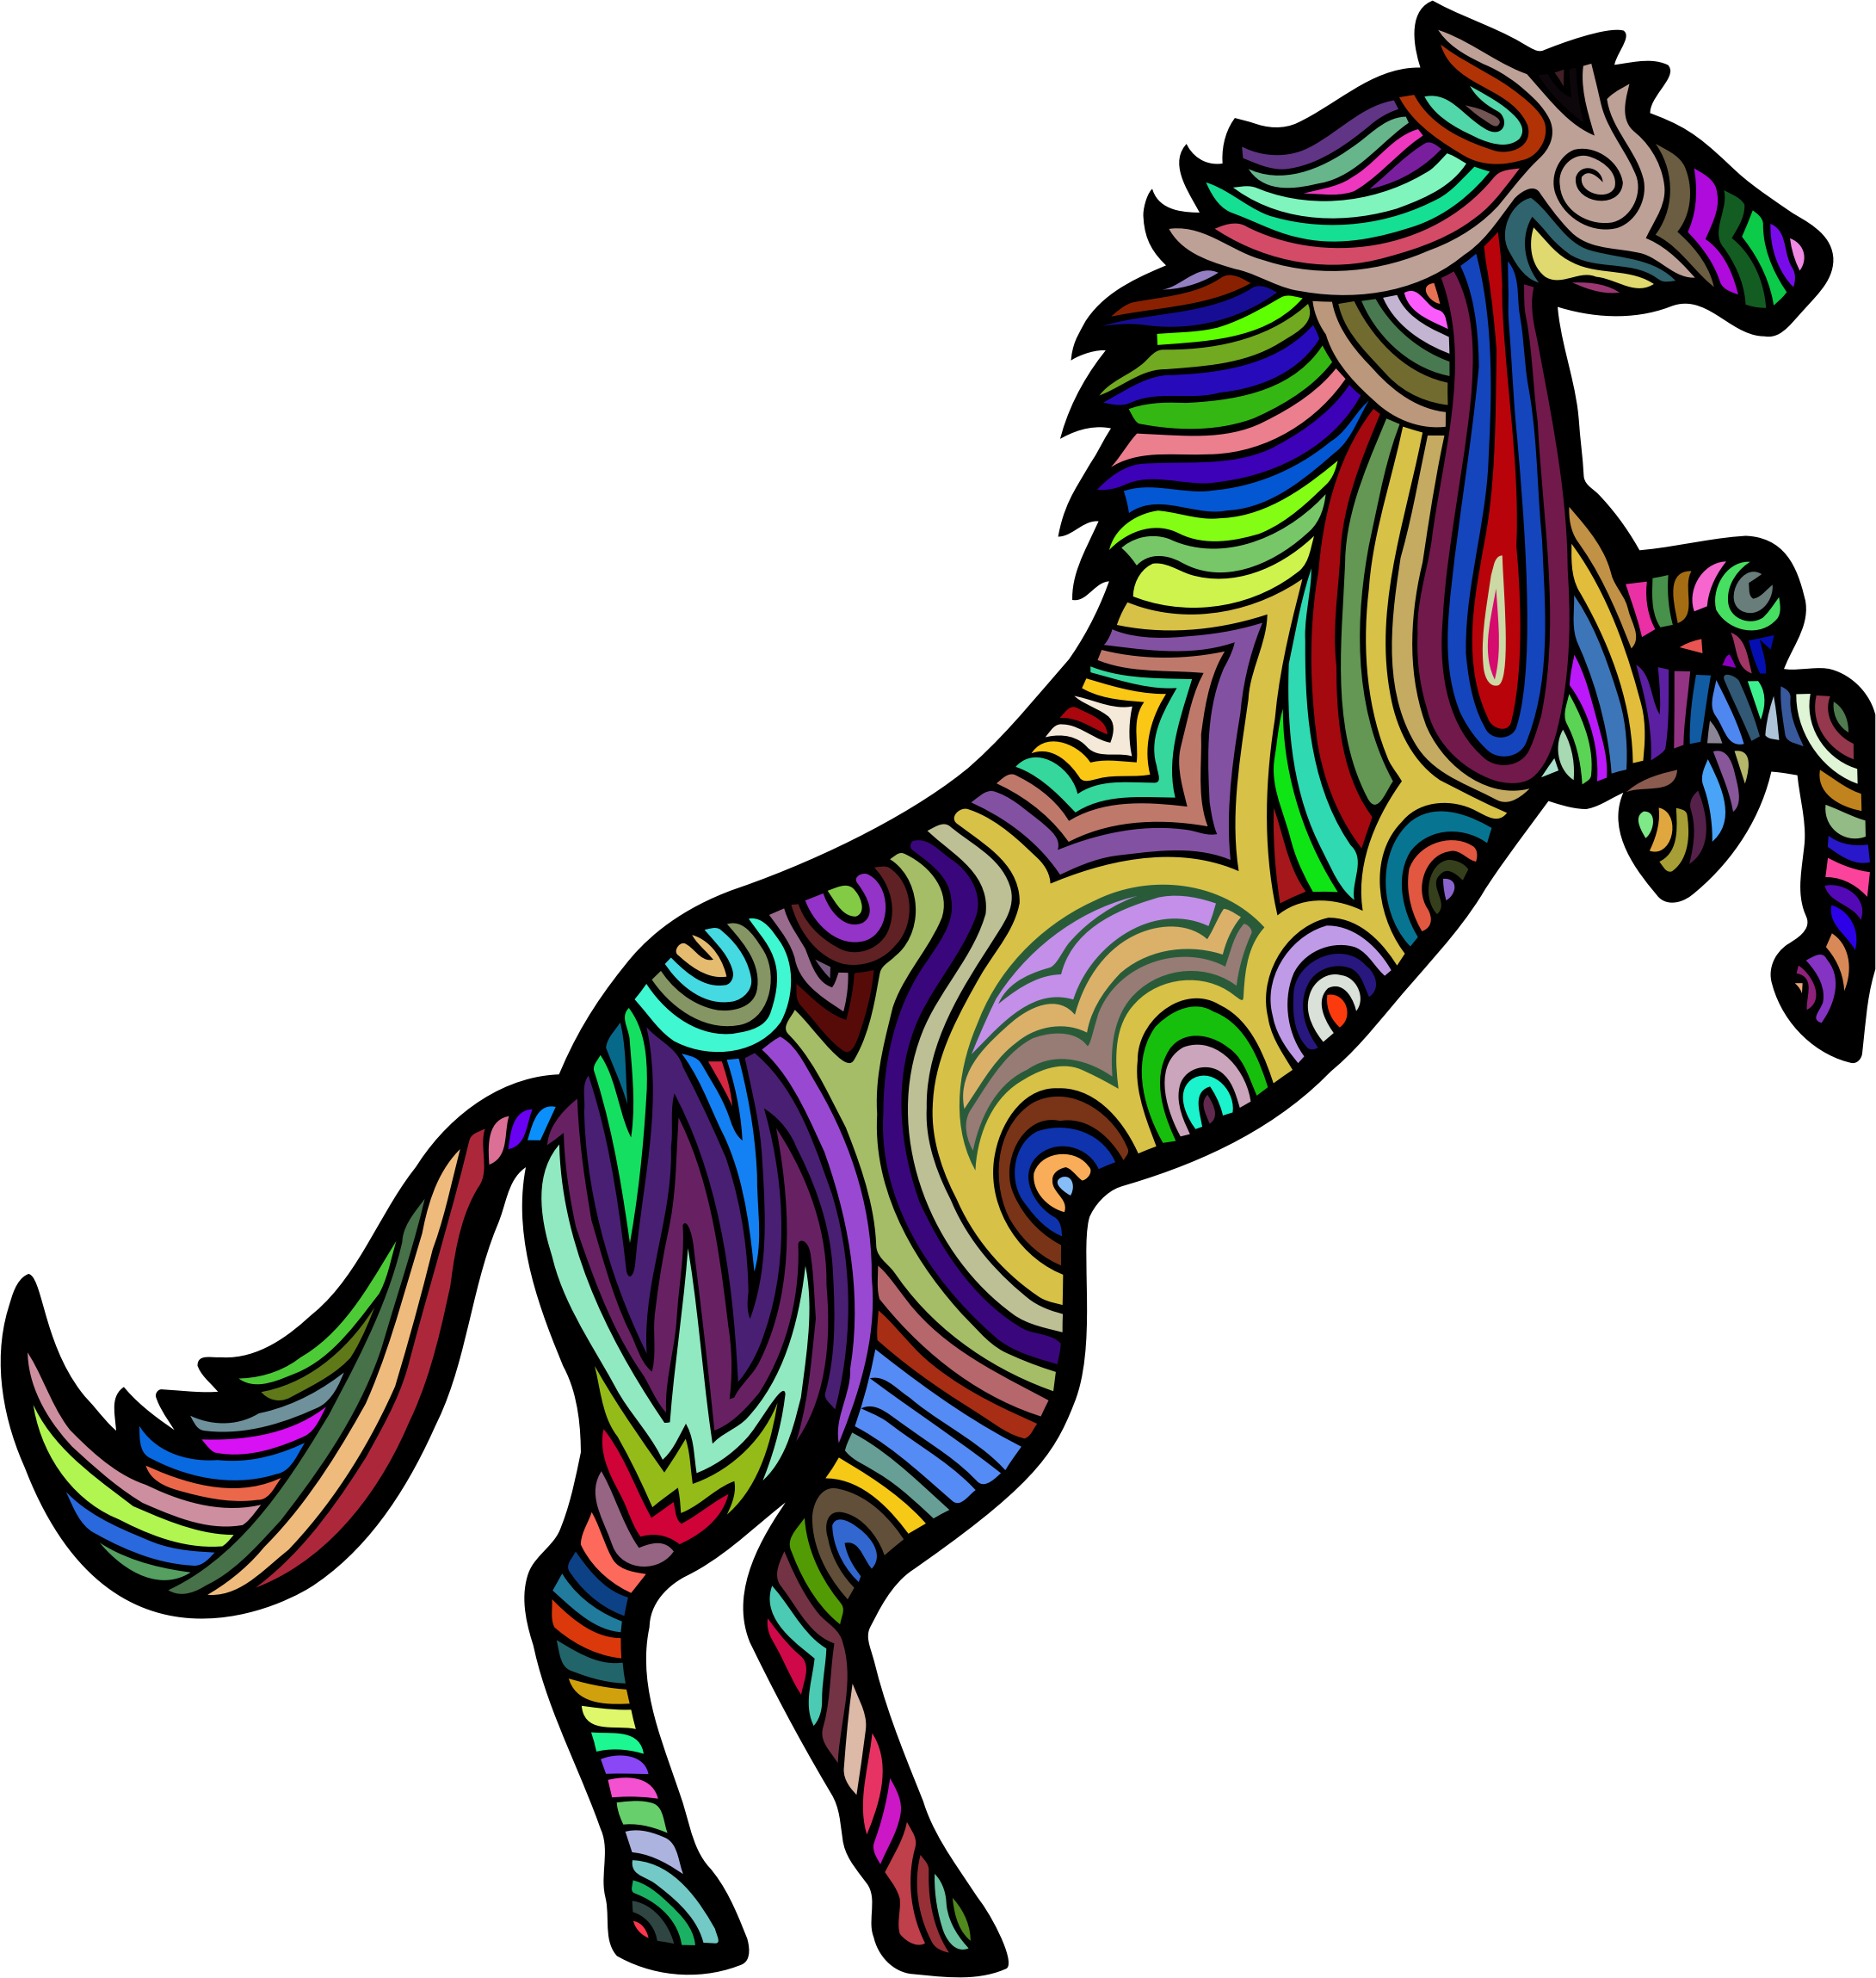 Chromatic Stylized Horse 3 by GDJ